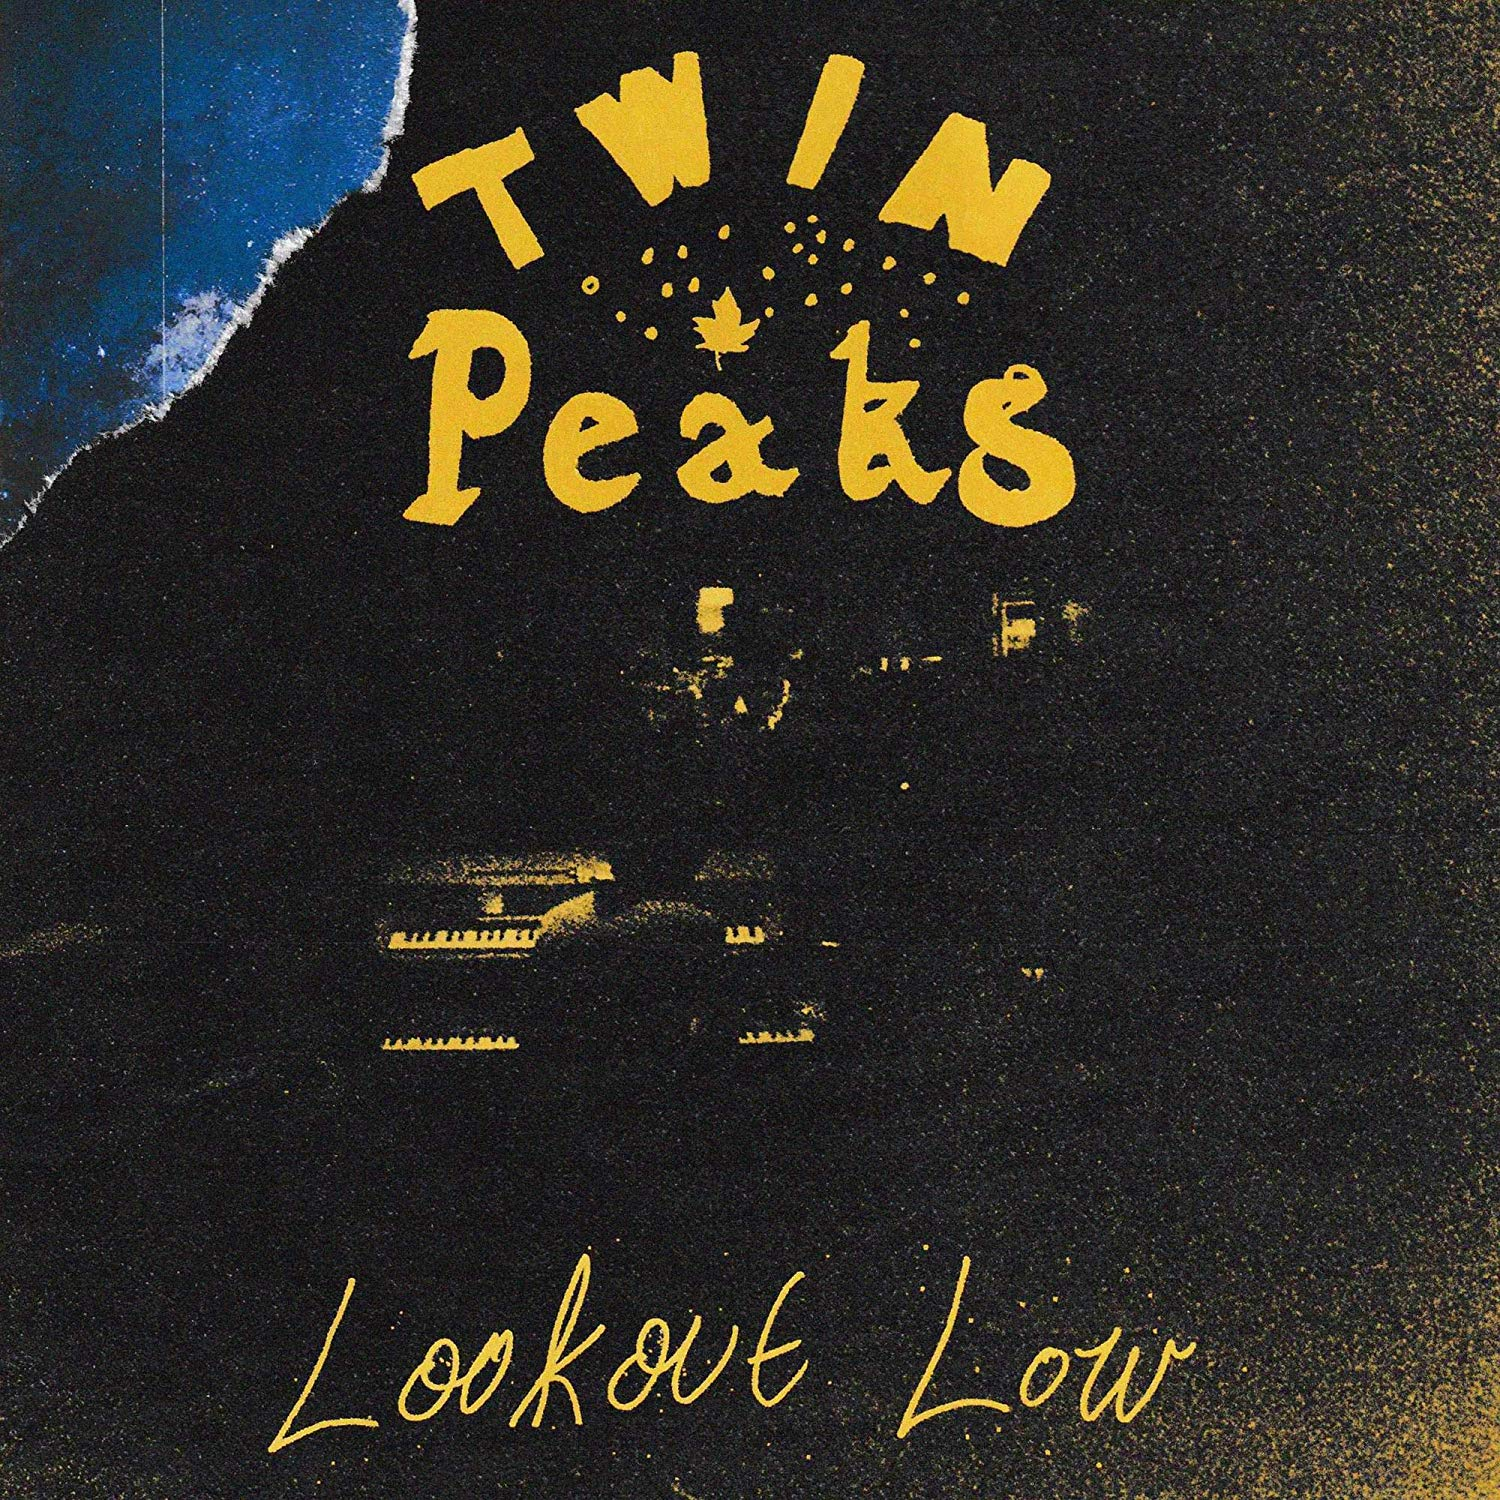 Twin Peaks - Lookout Low [Indie Exclusive Limited Edition Orange Swirl LP]